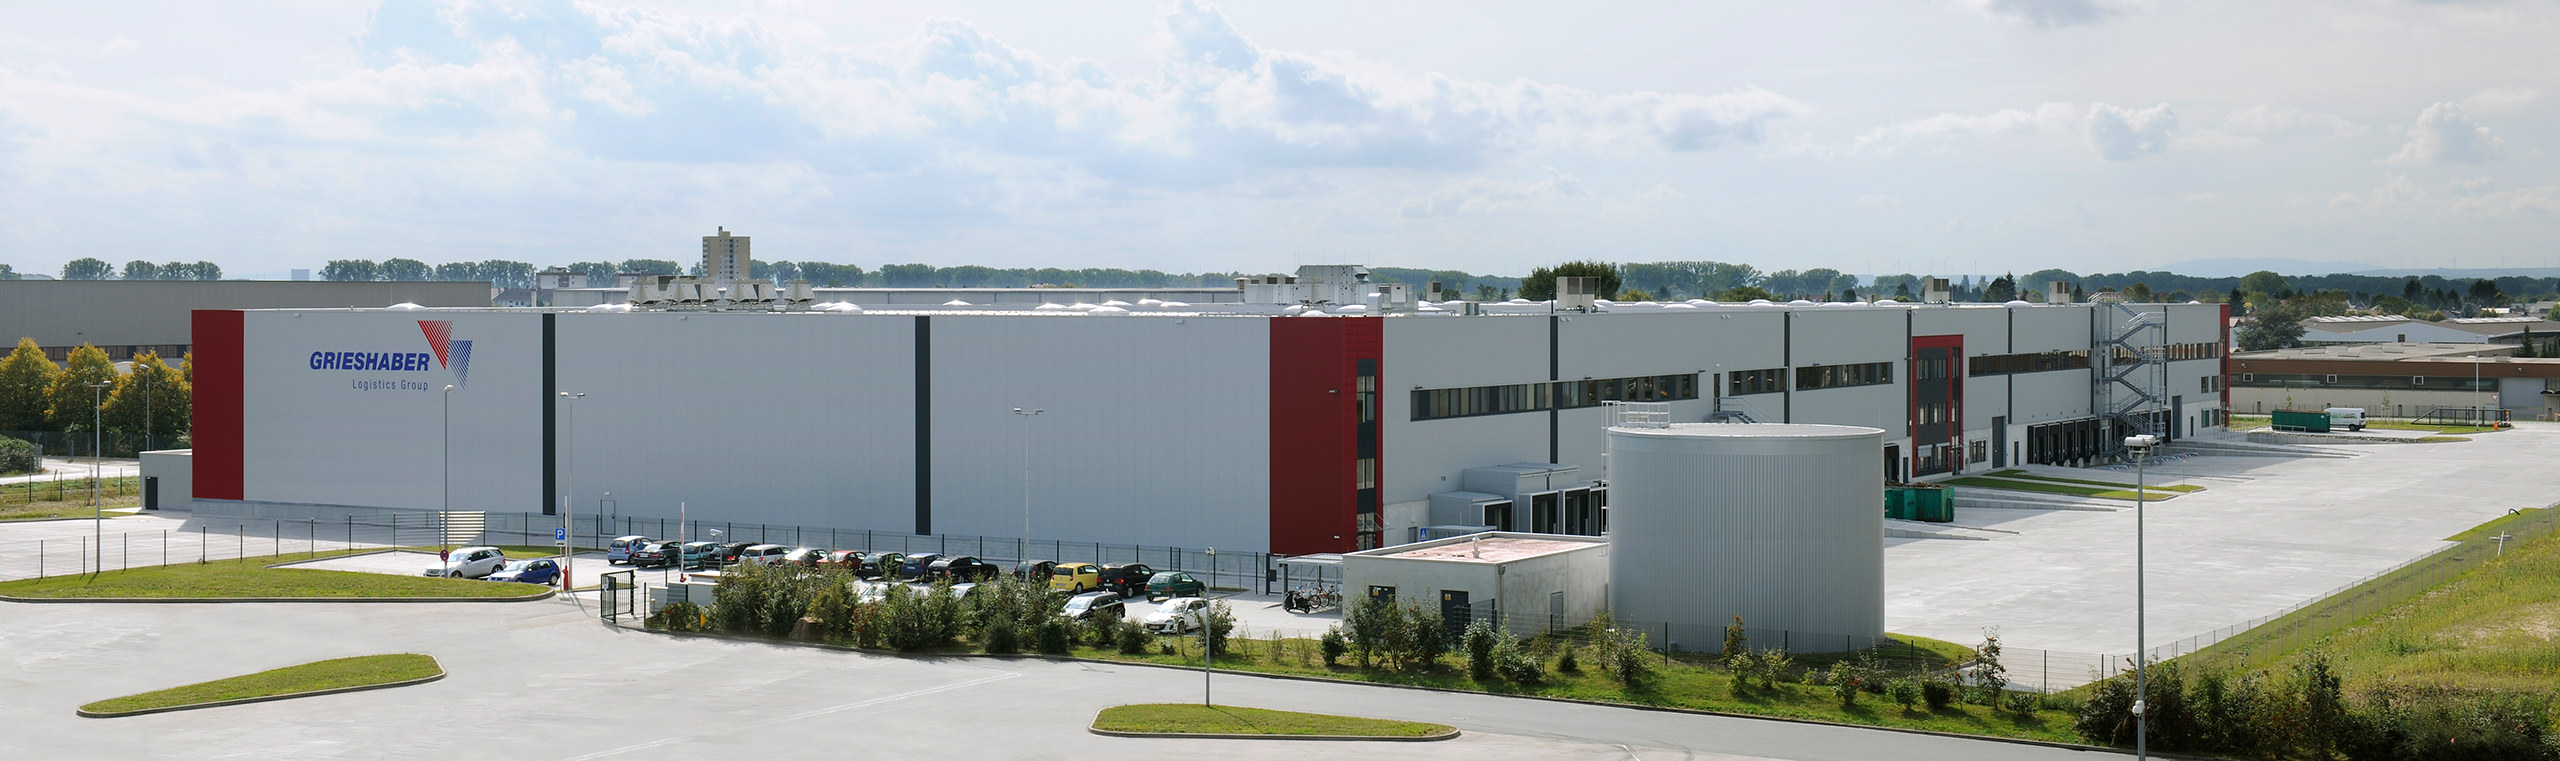 Grieshaber Logistics Group Firmensitz in Biebesheim